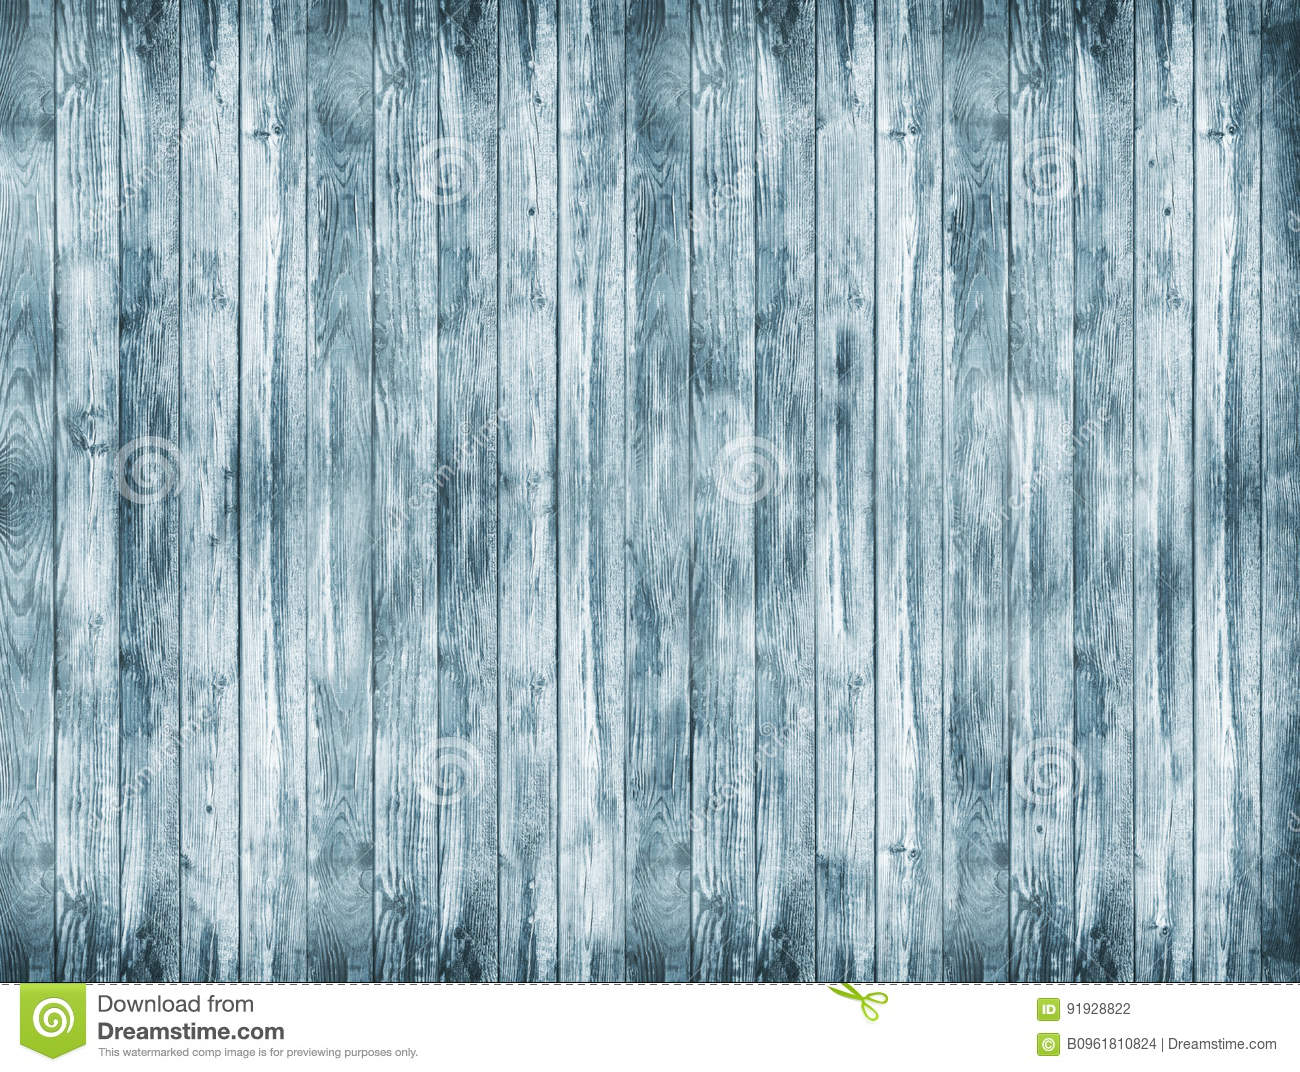 A large wooden background. A blue wood texture. Old boards background.